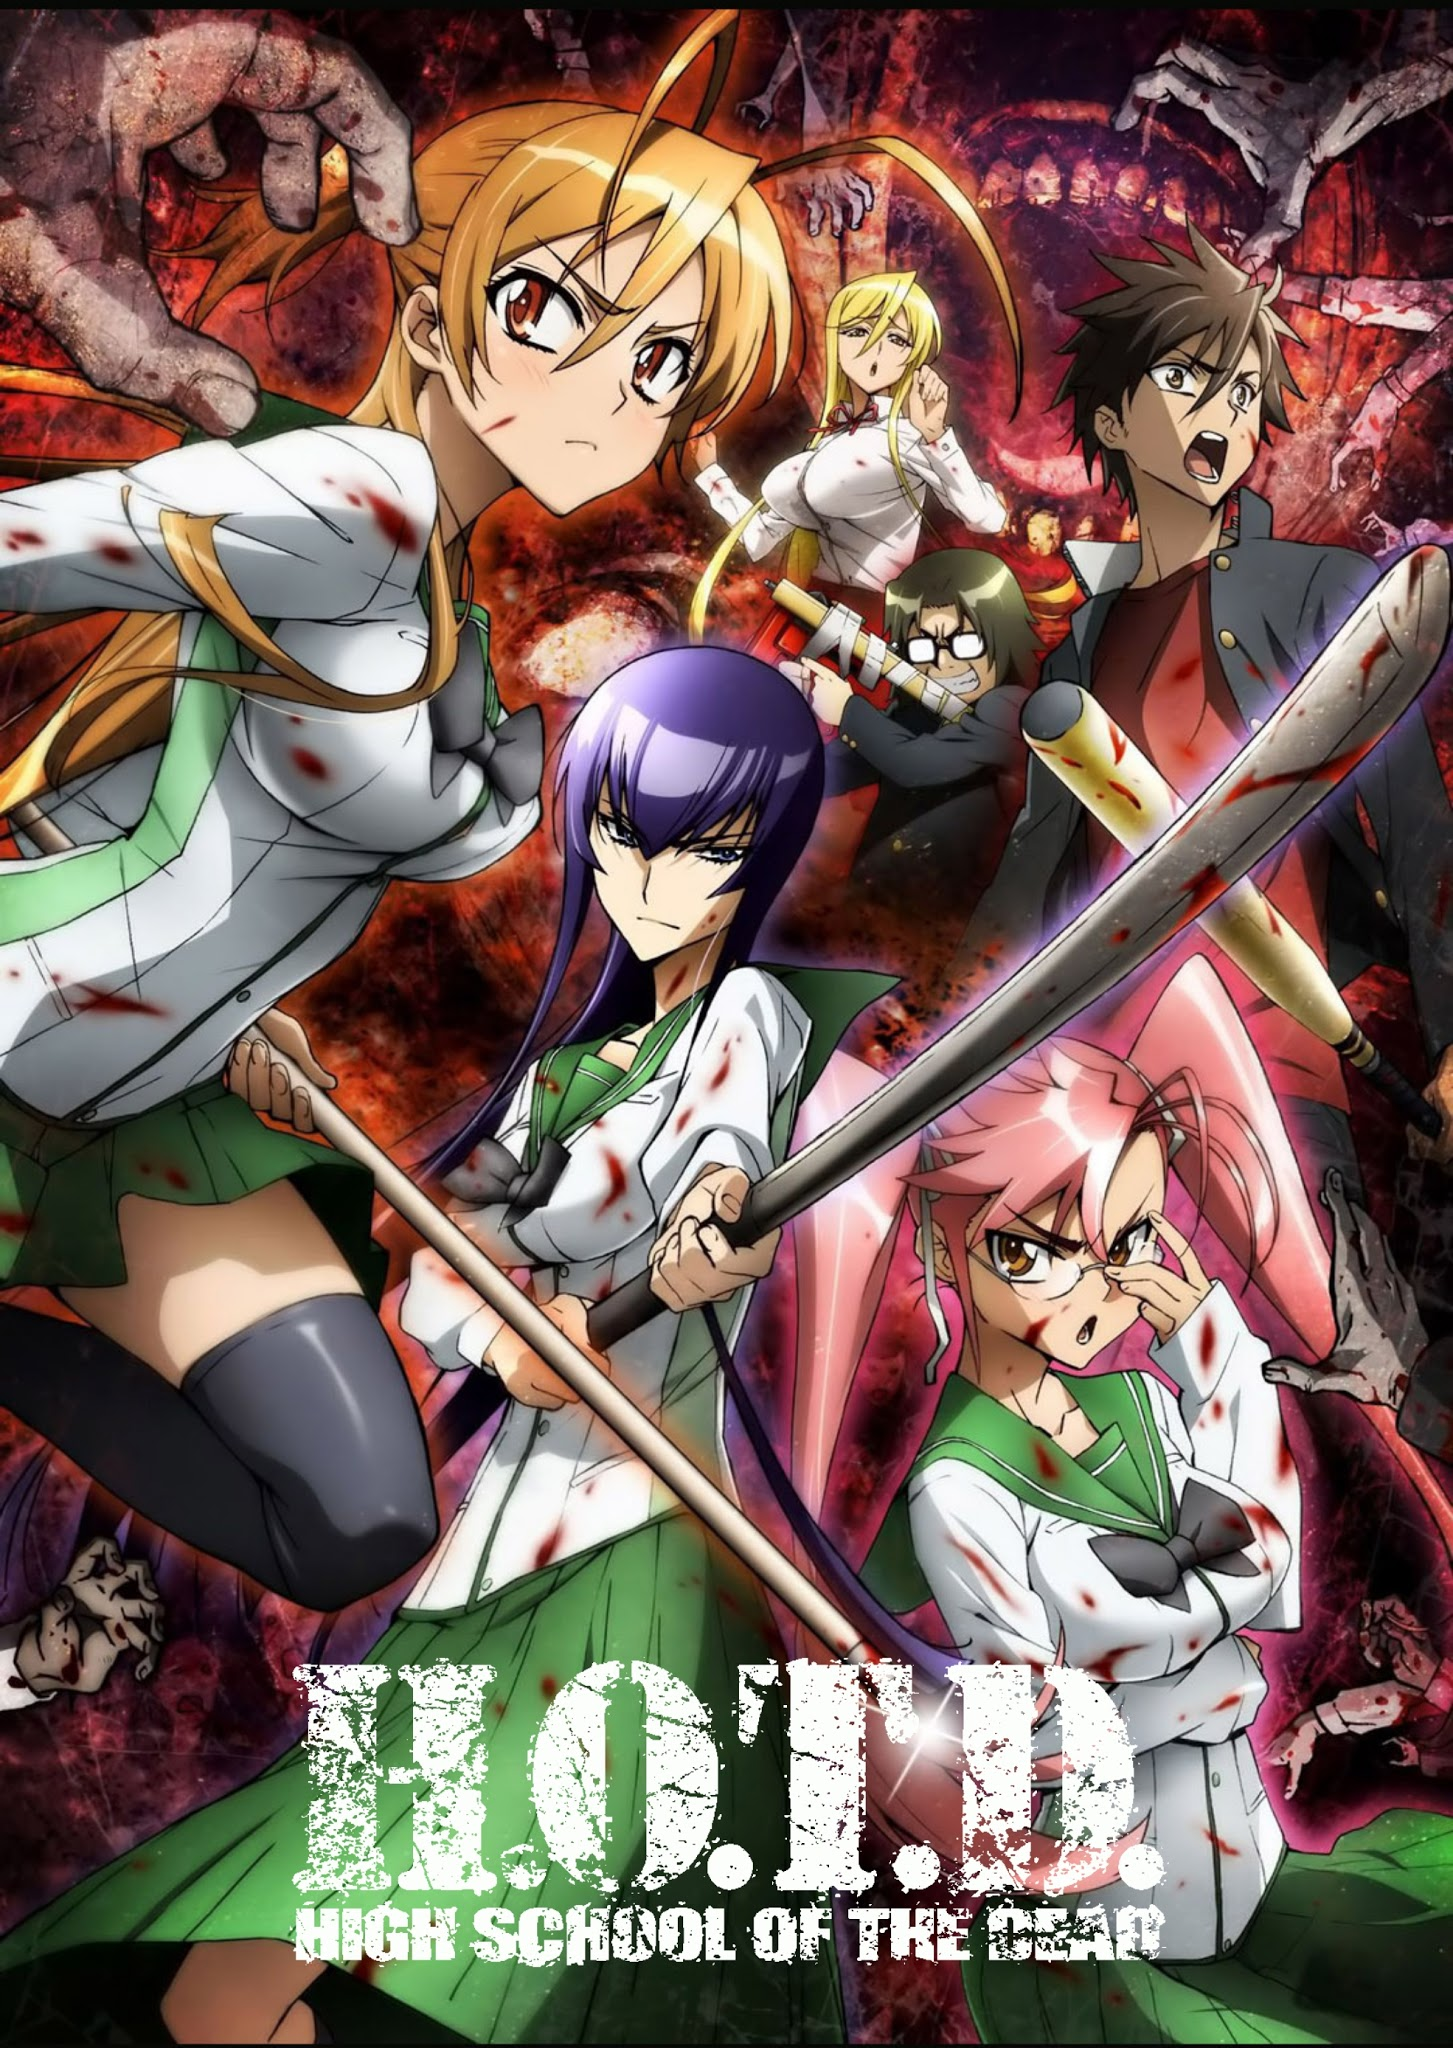 High School of The Dead | HD | Cast/Ing/Jap+Sub | 12/12+Ova | MKV-1080p | x265 High_School_of_The_Dead